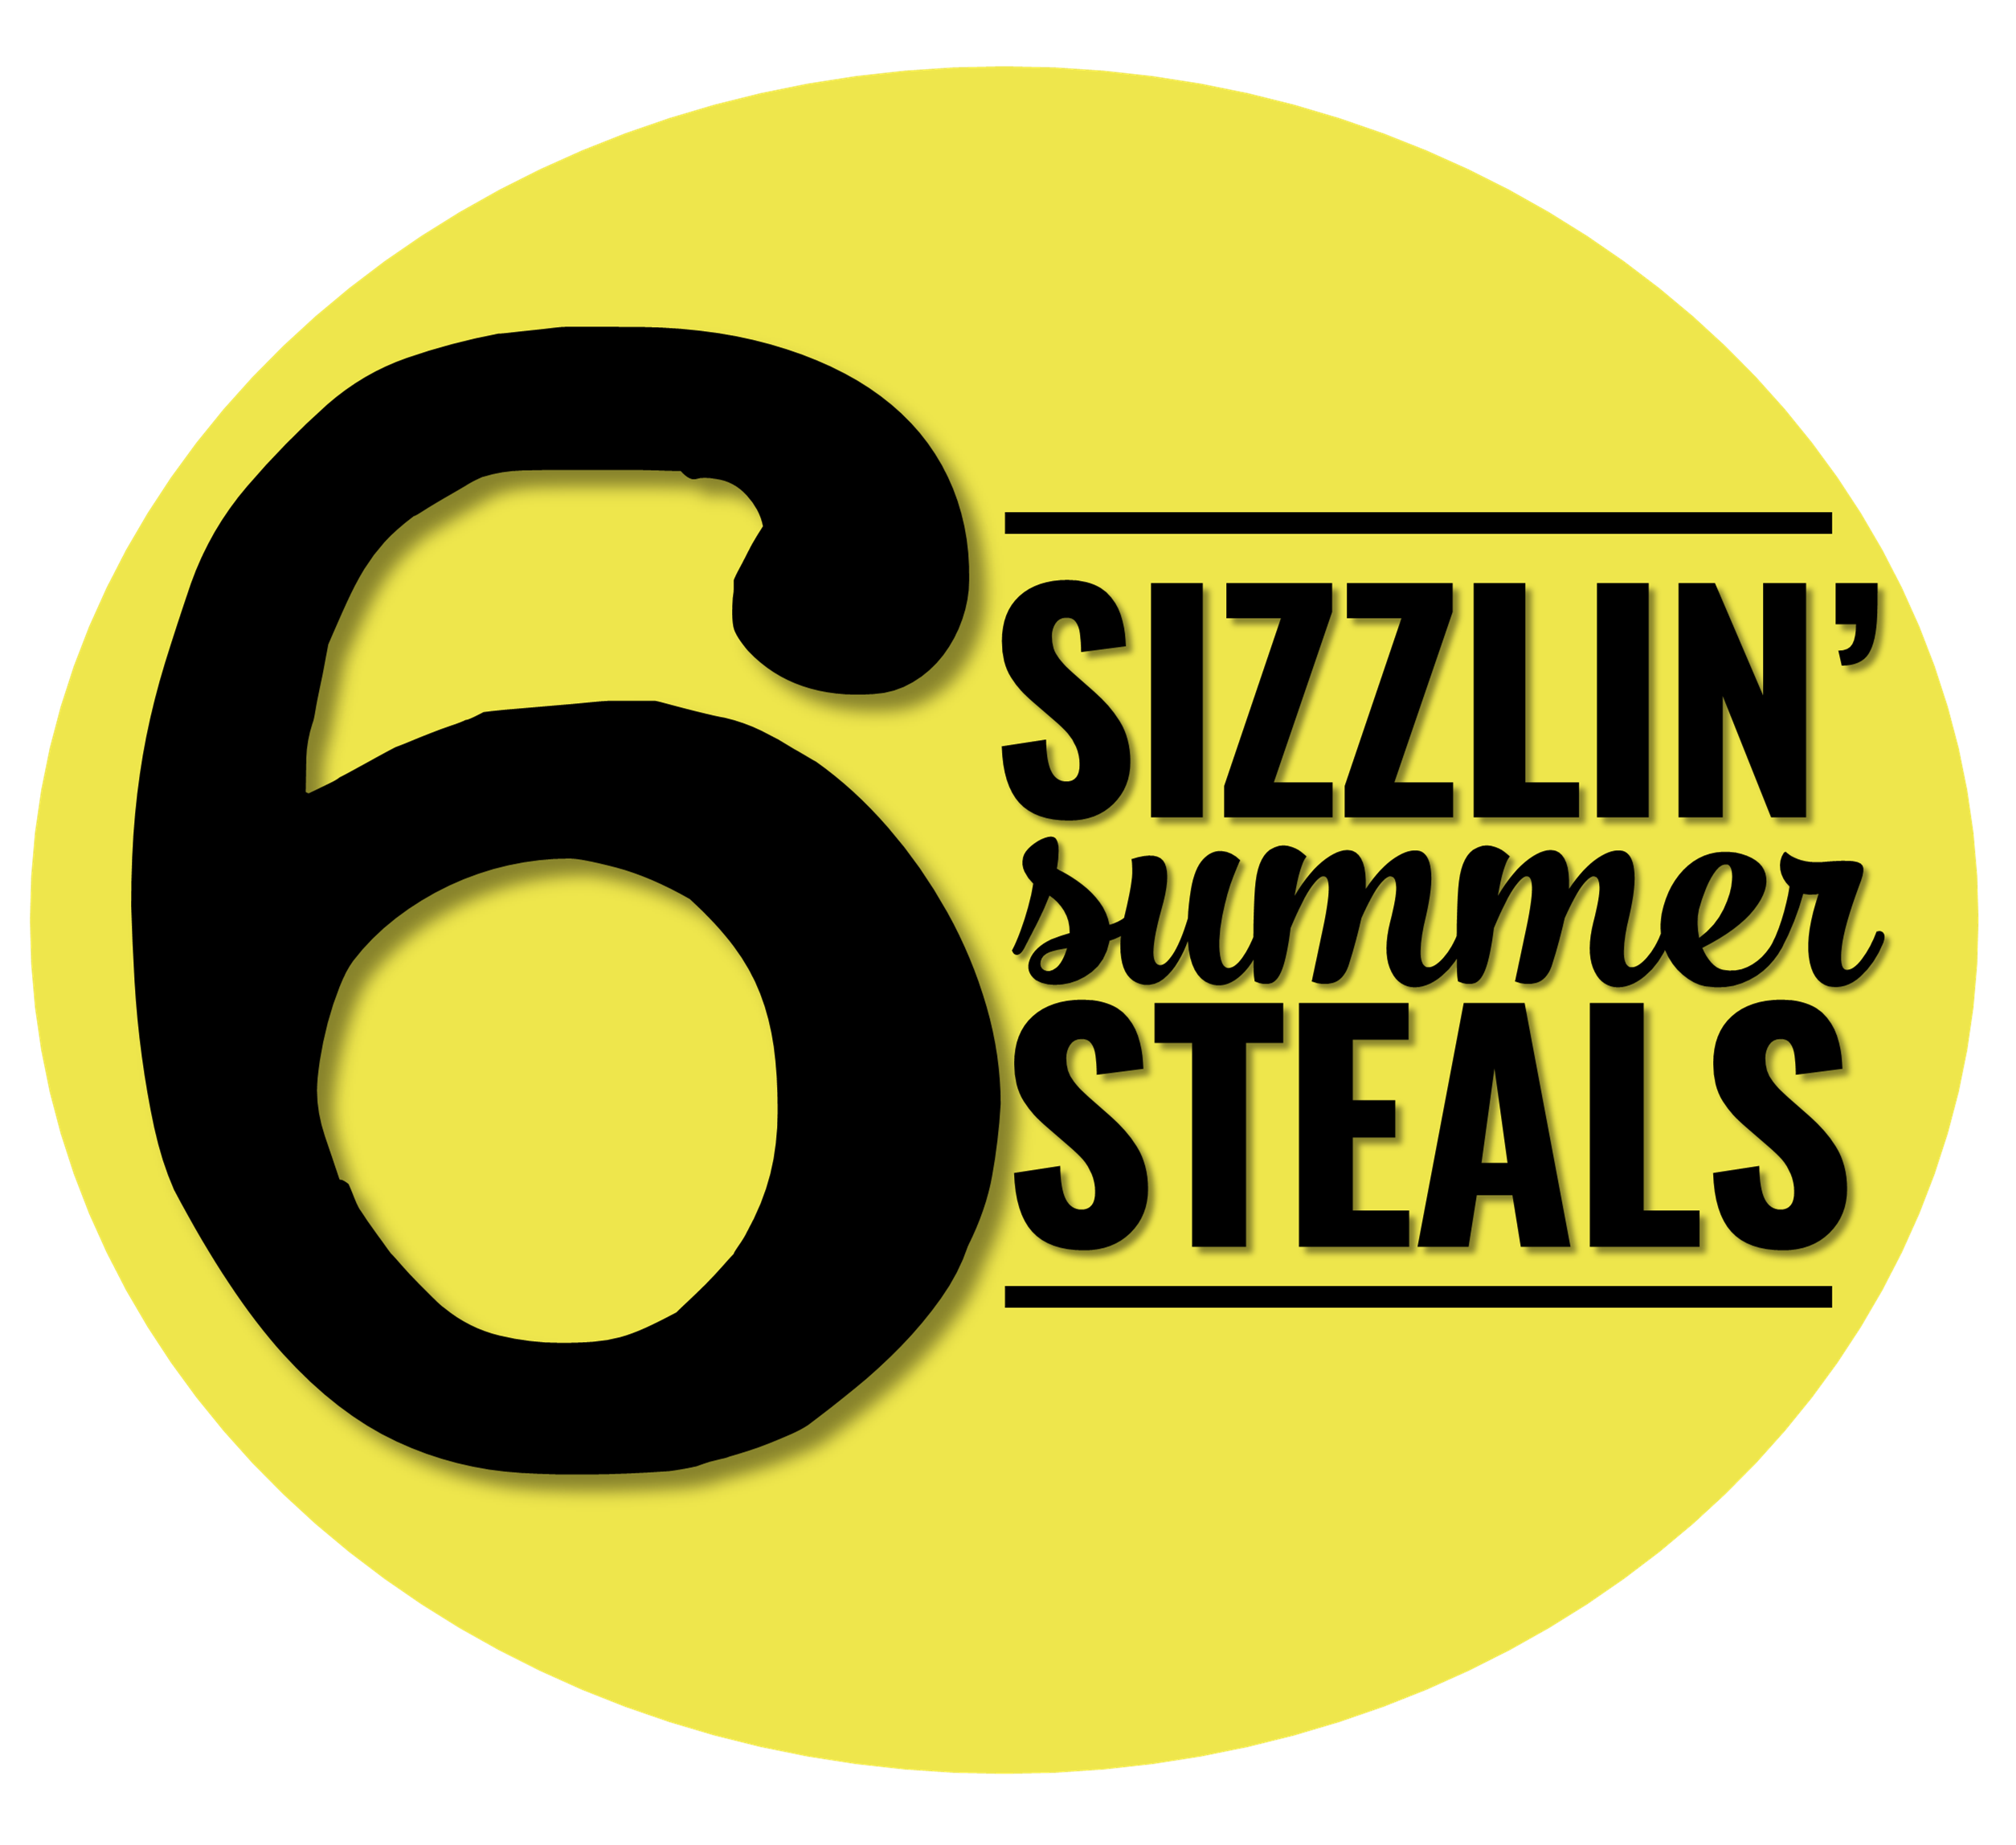 Top Image - 6 Sizzlin' Summer Steals